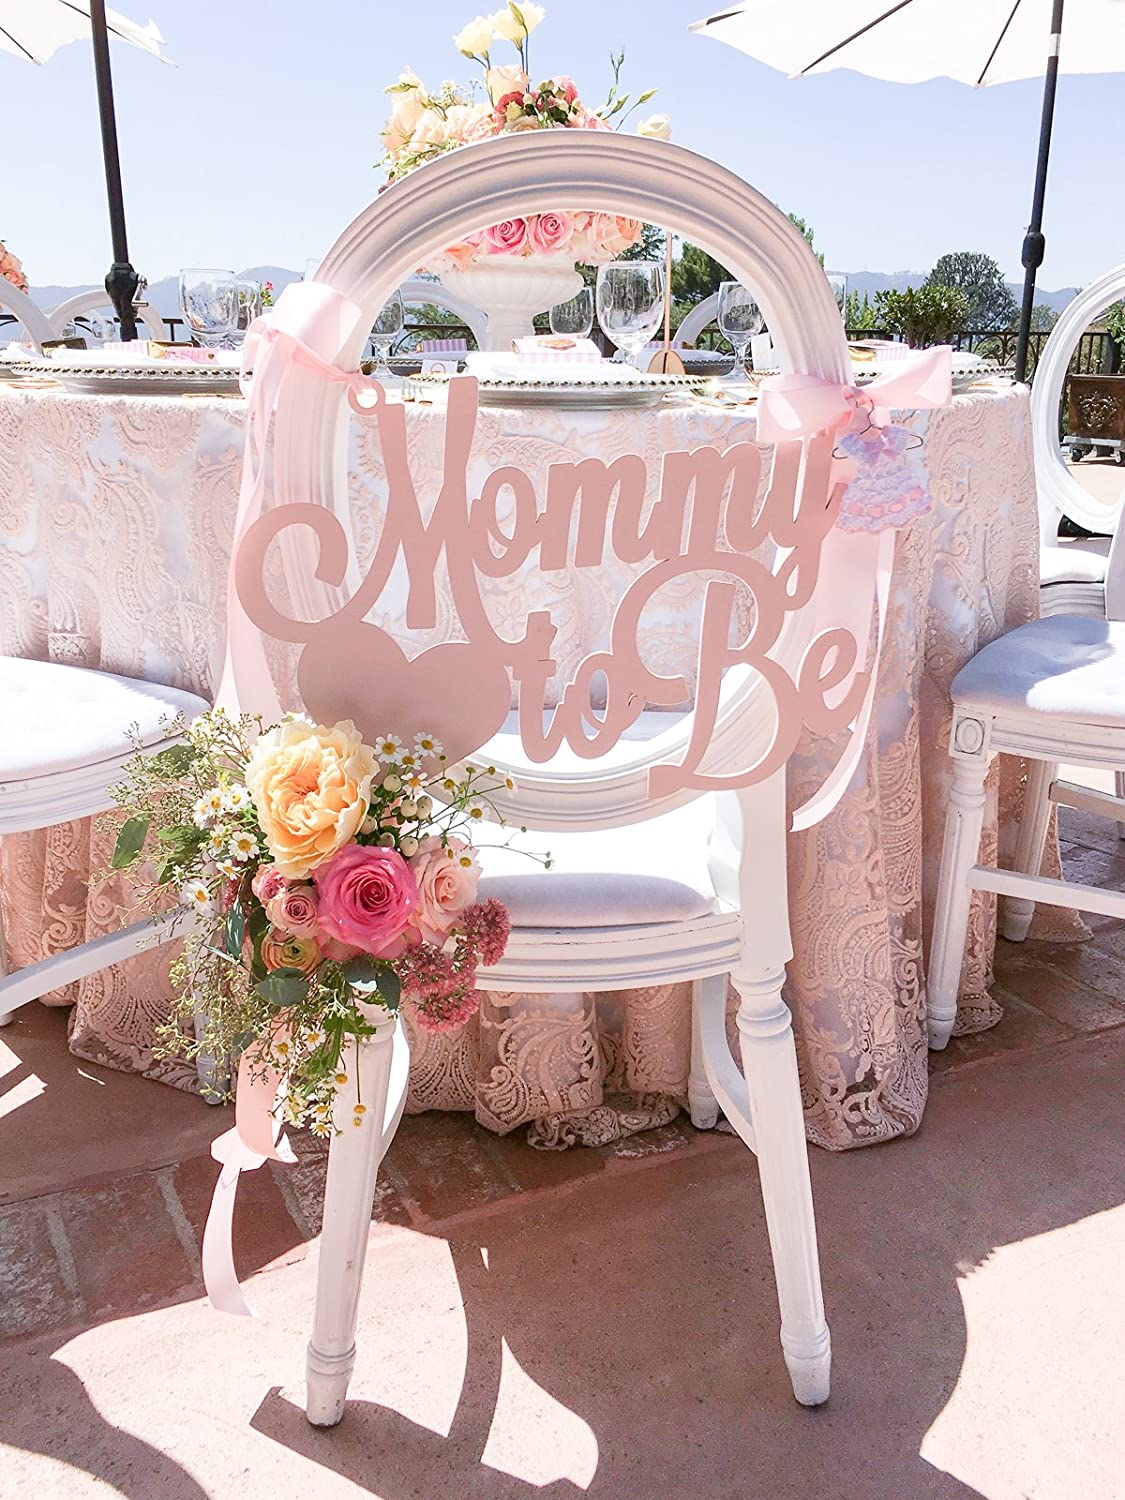 Amazoncom Baby Shower Chair Sign Mommy To Be Wooden Cutout In